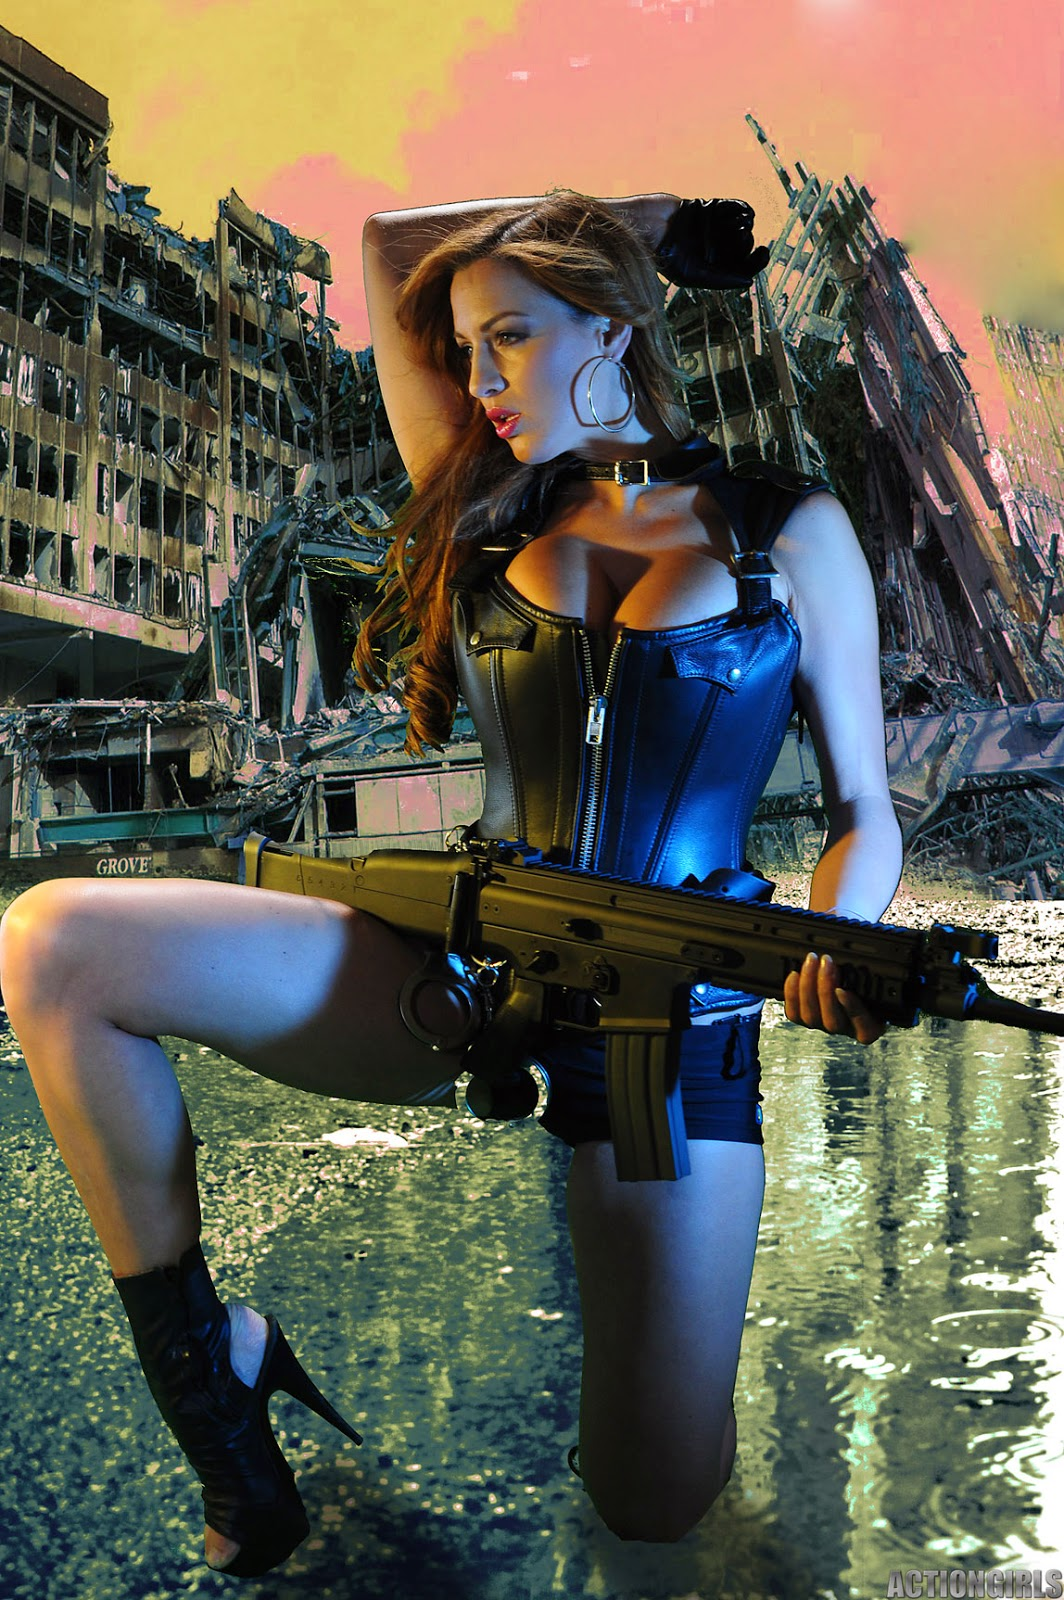 Jordan Carver Big Boobs Show With Gun In Leather Killer -2337